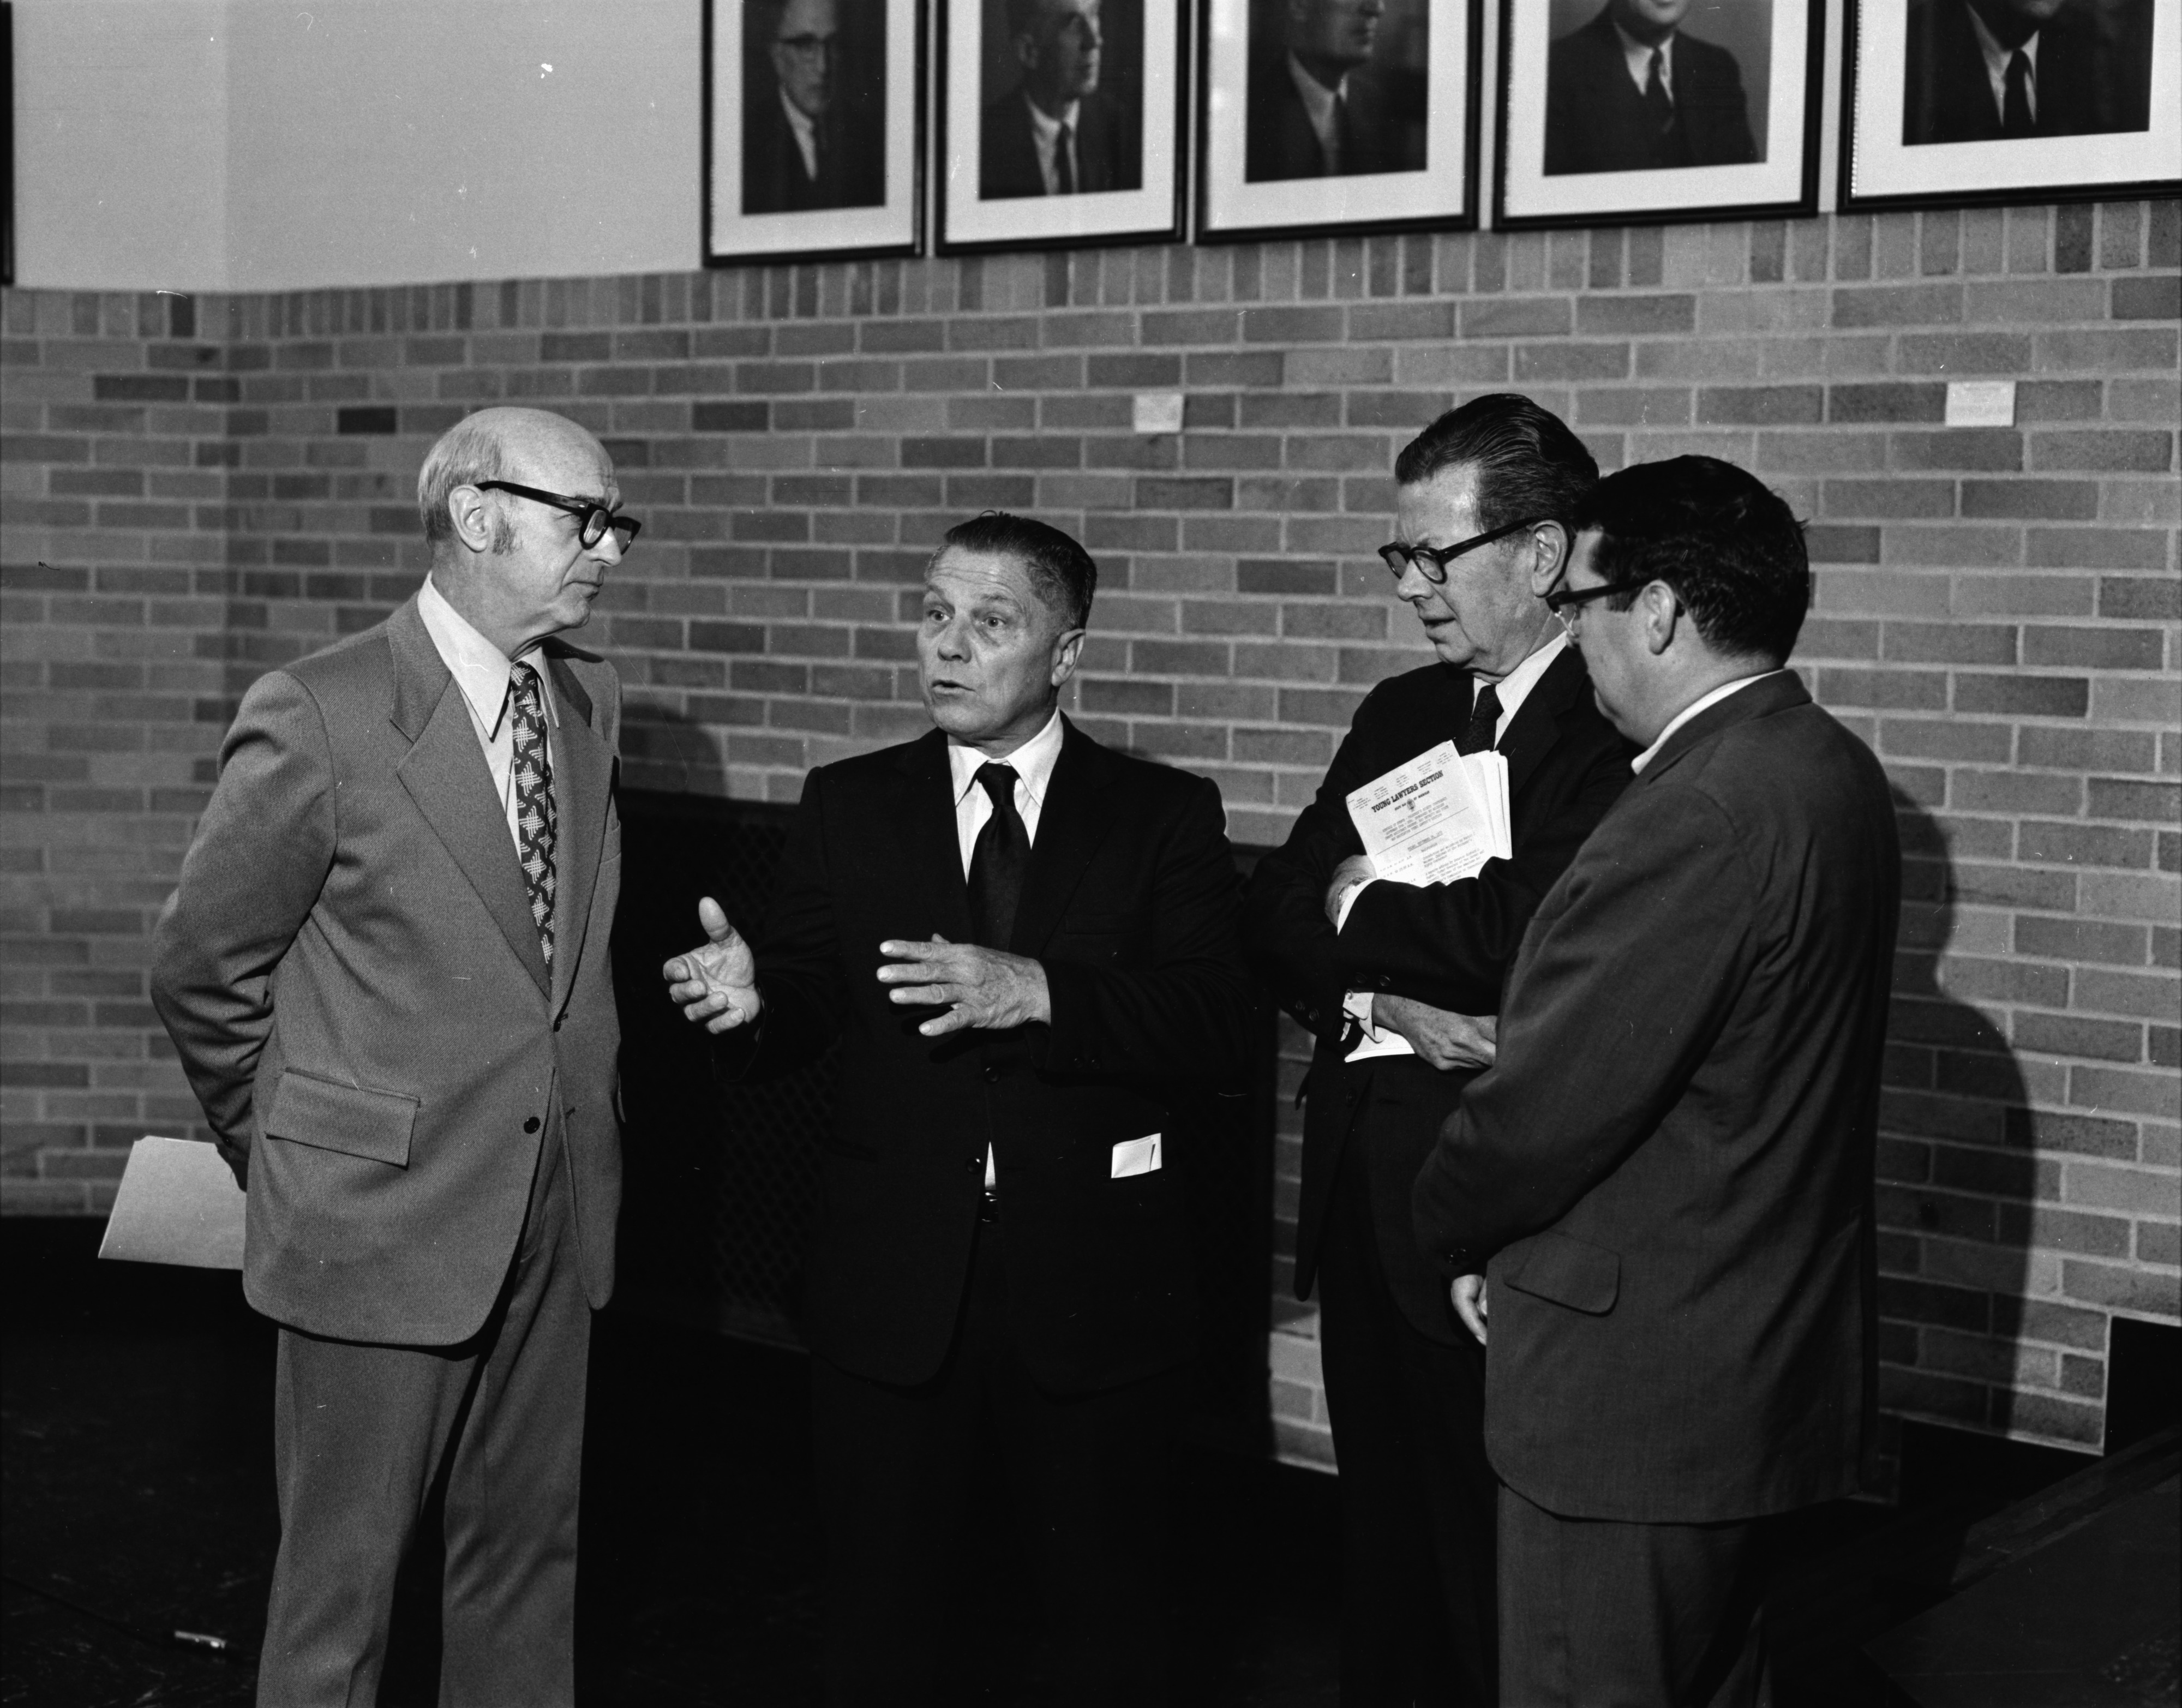 Jimmy Hoffa, Thomas G. Kavanaugh, Richard Hughes, and Theodore J. St. Antoine at the University of Michigan's Prisoner's Rights Conference, September 1972 image